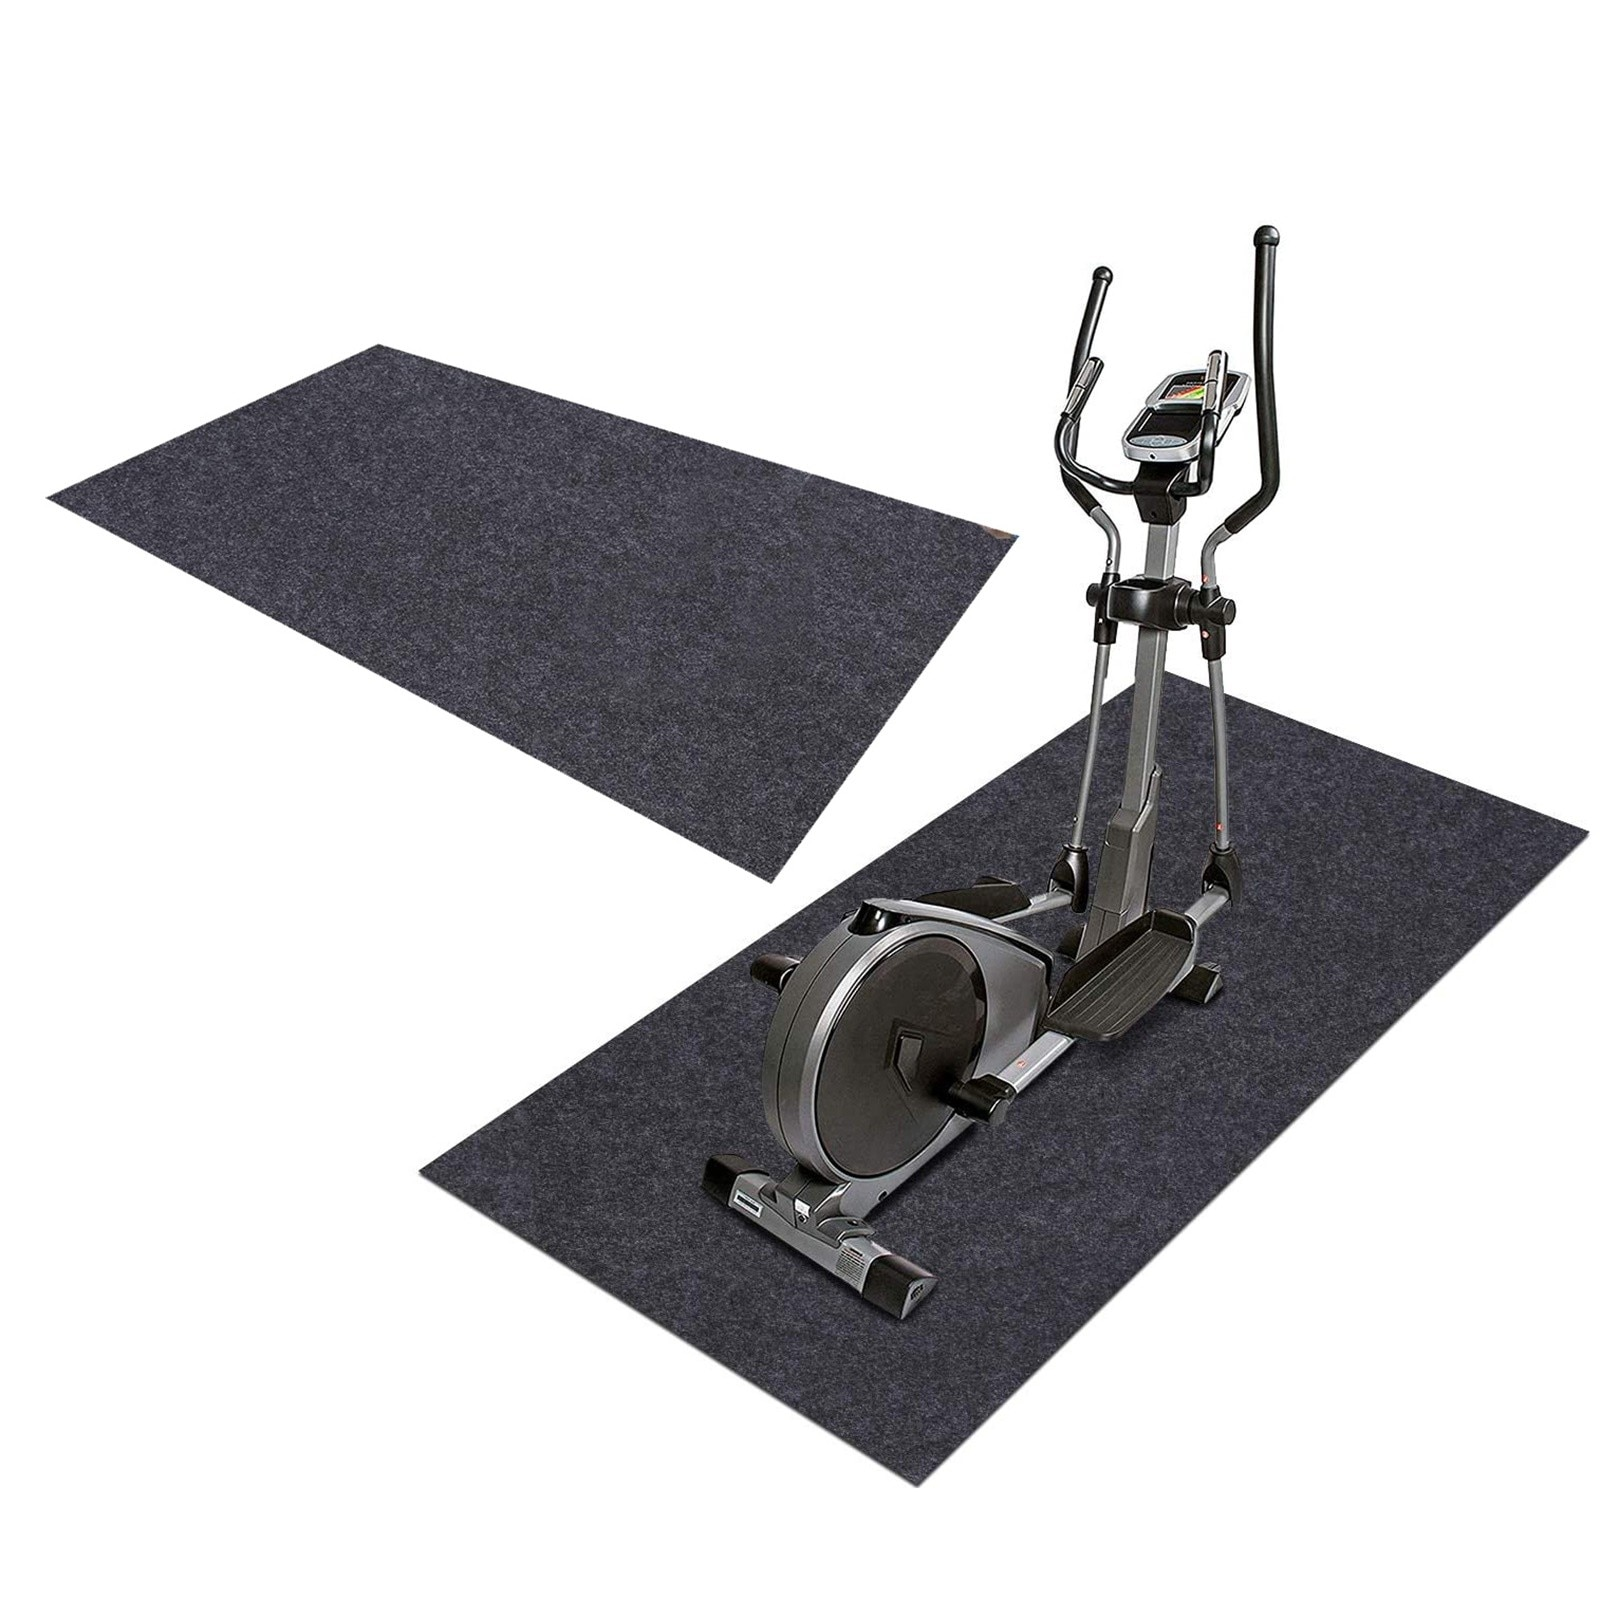 Fitness Equipment Protective Pads Can Be Washed And Used Repeatedly Protect Floor Mat Running Machine Shock Absorbing Pad